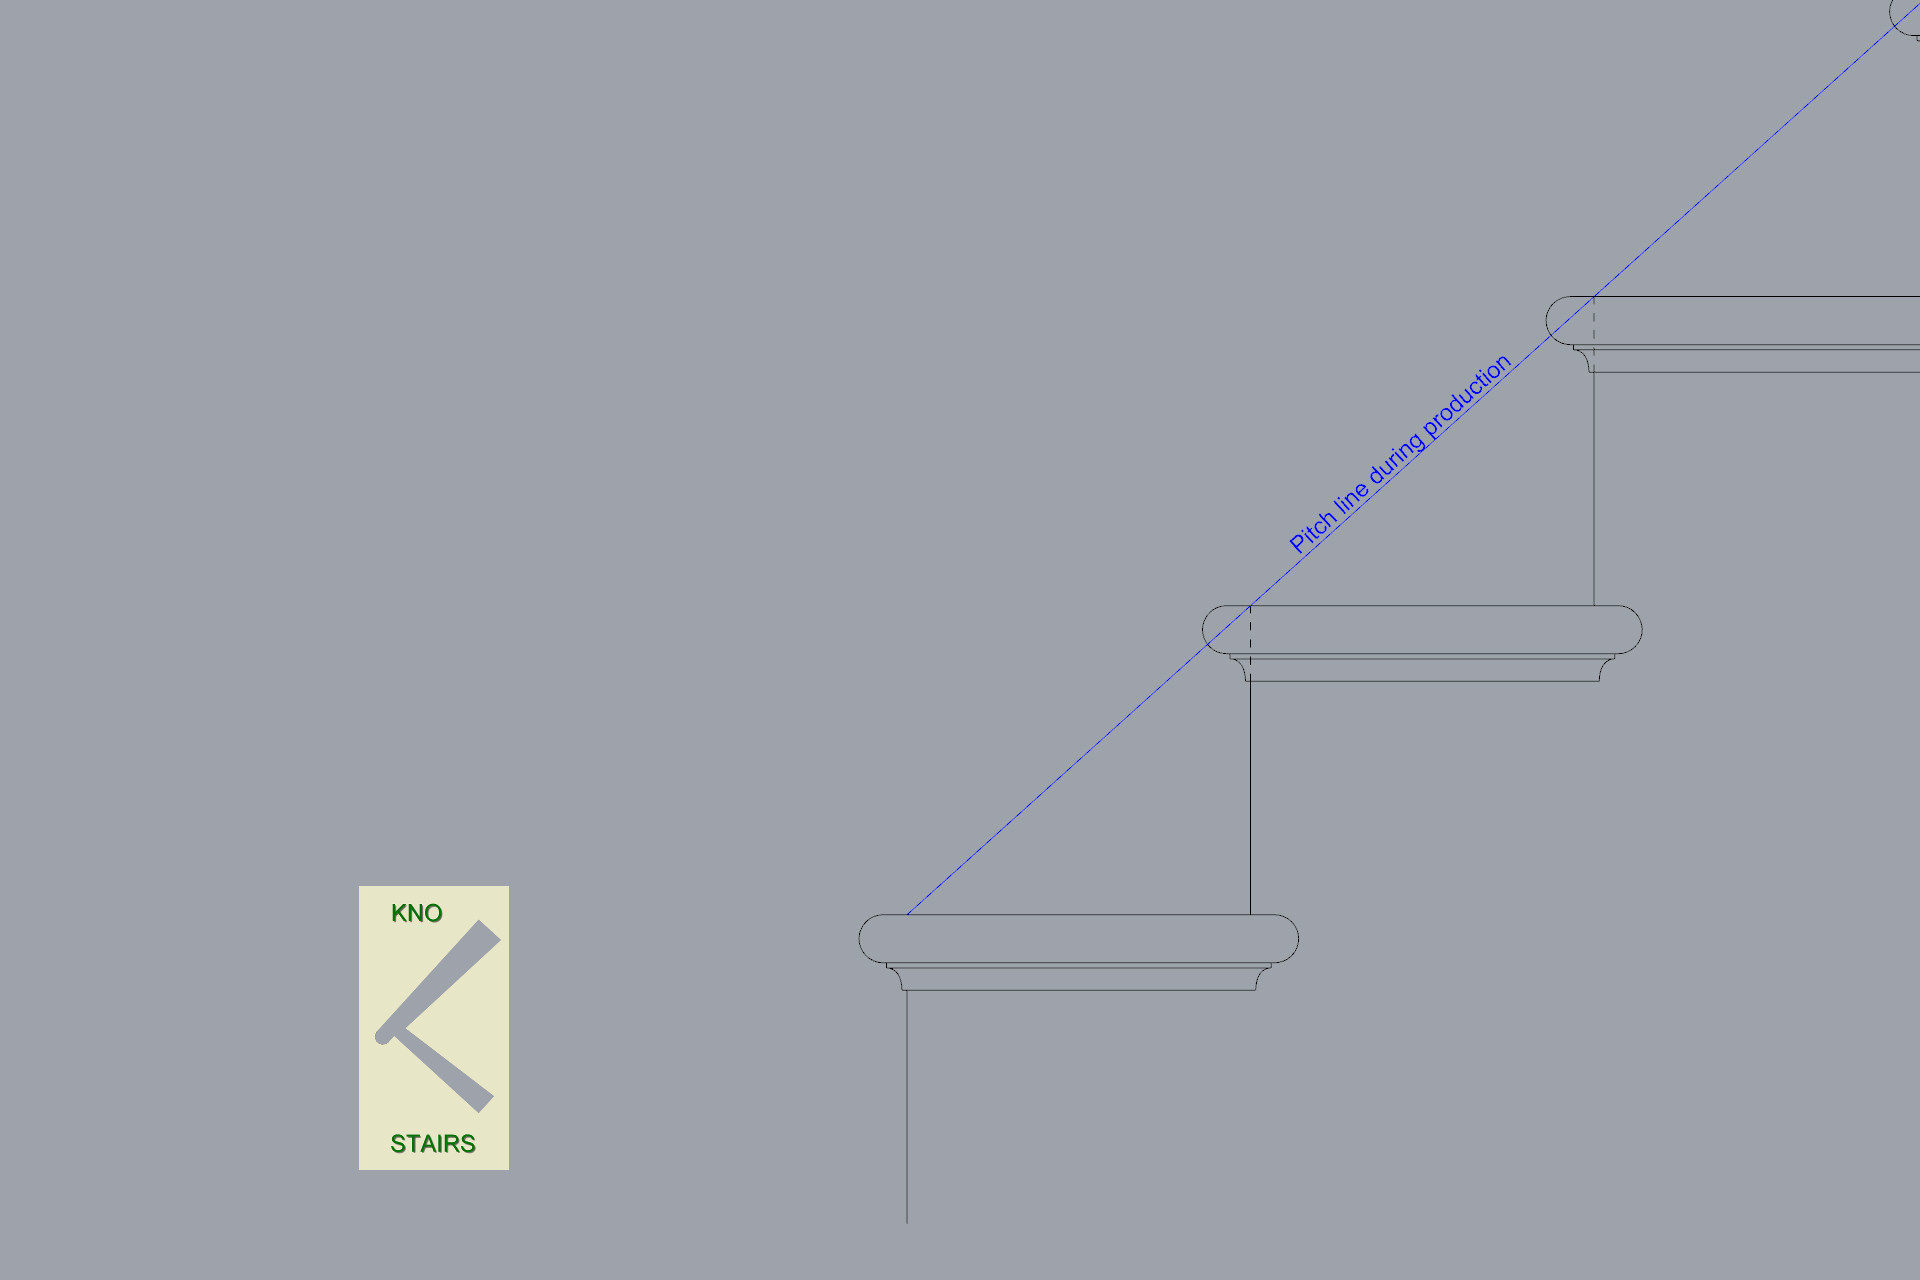 how to draw the Pitch line while makeing stairs.